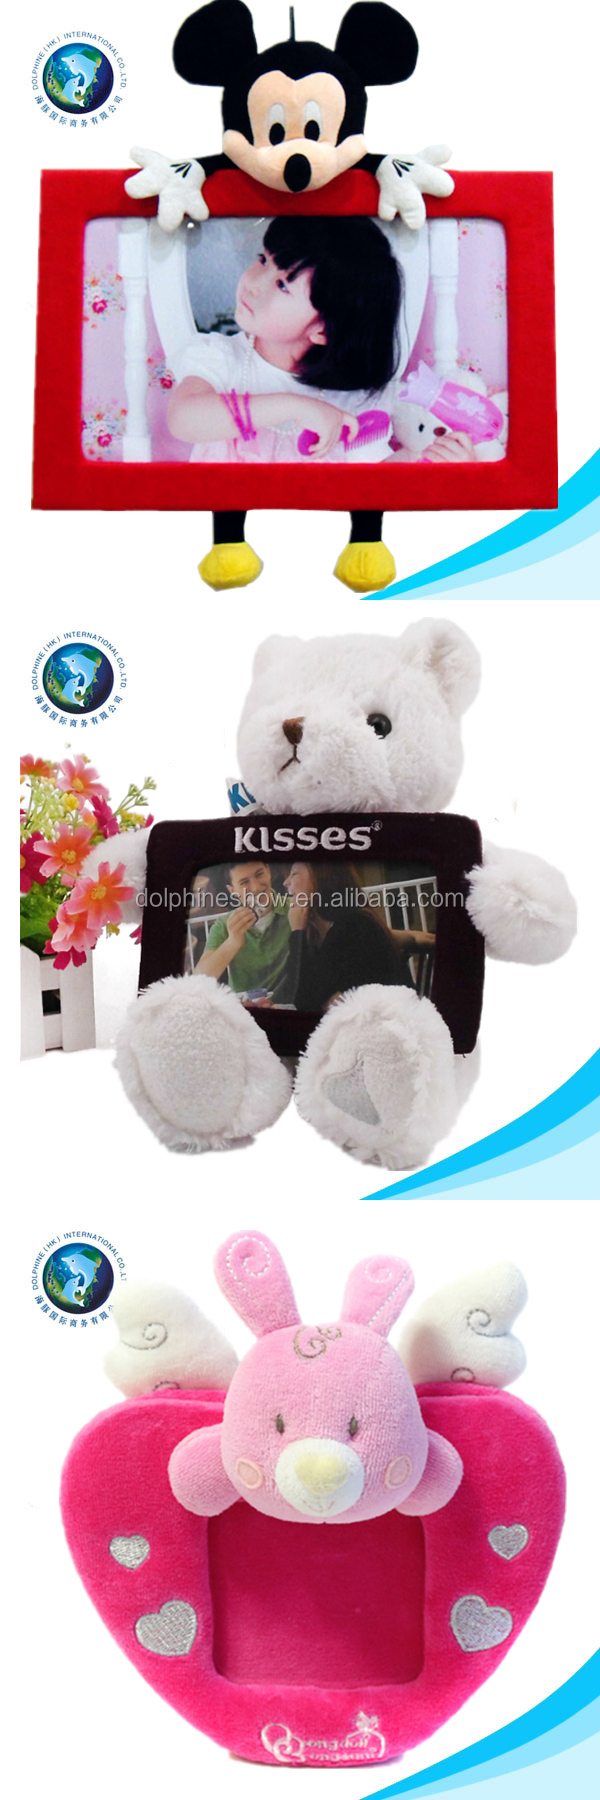 3d Photo Frame Cute Plush Stuffed Animal Shape Baby Photo Frame